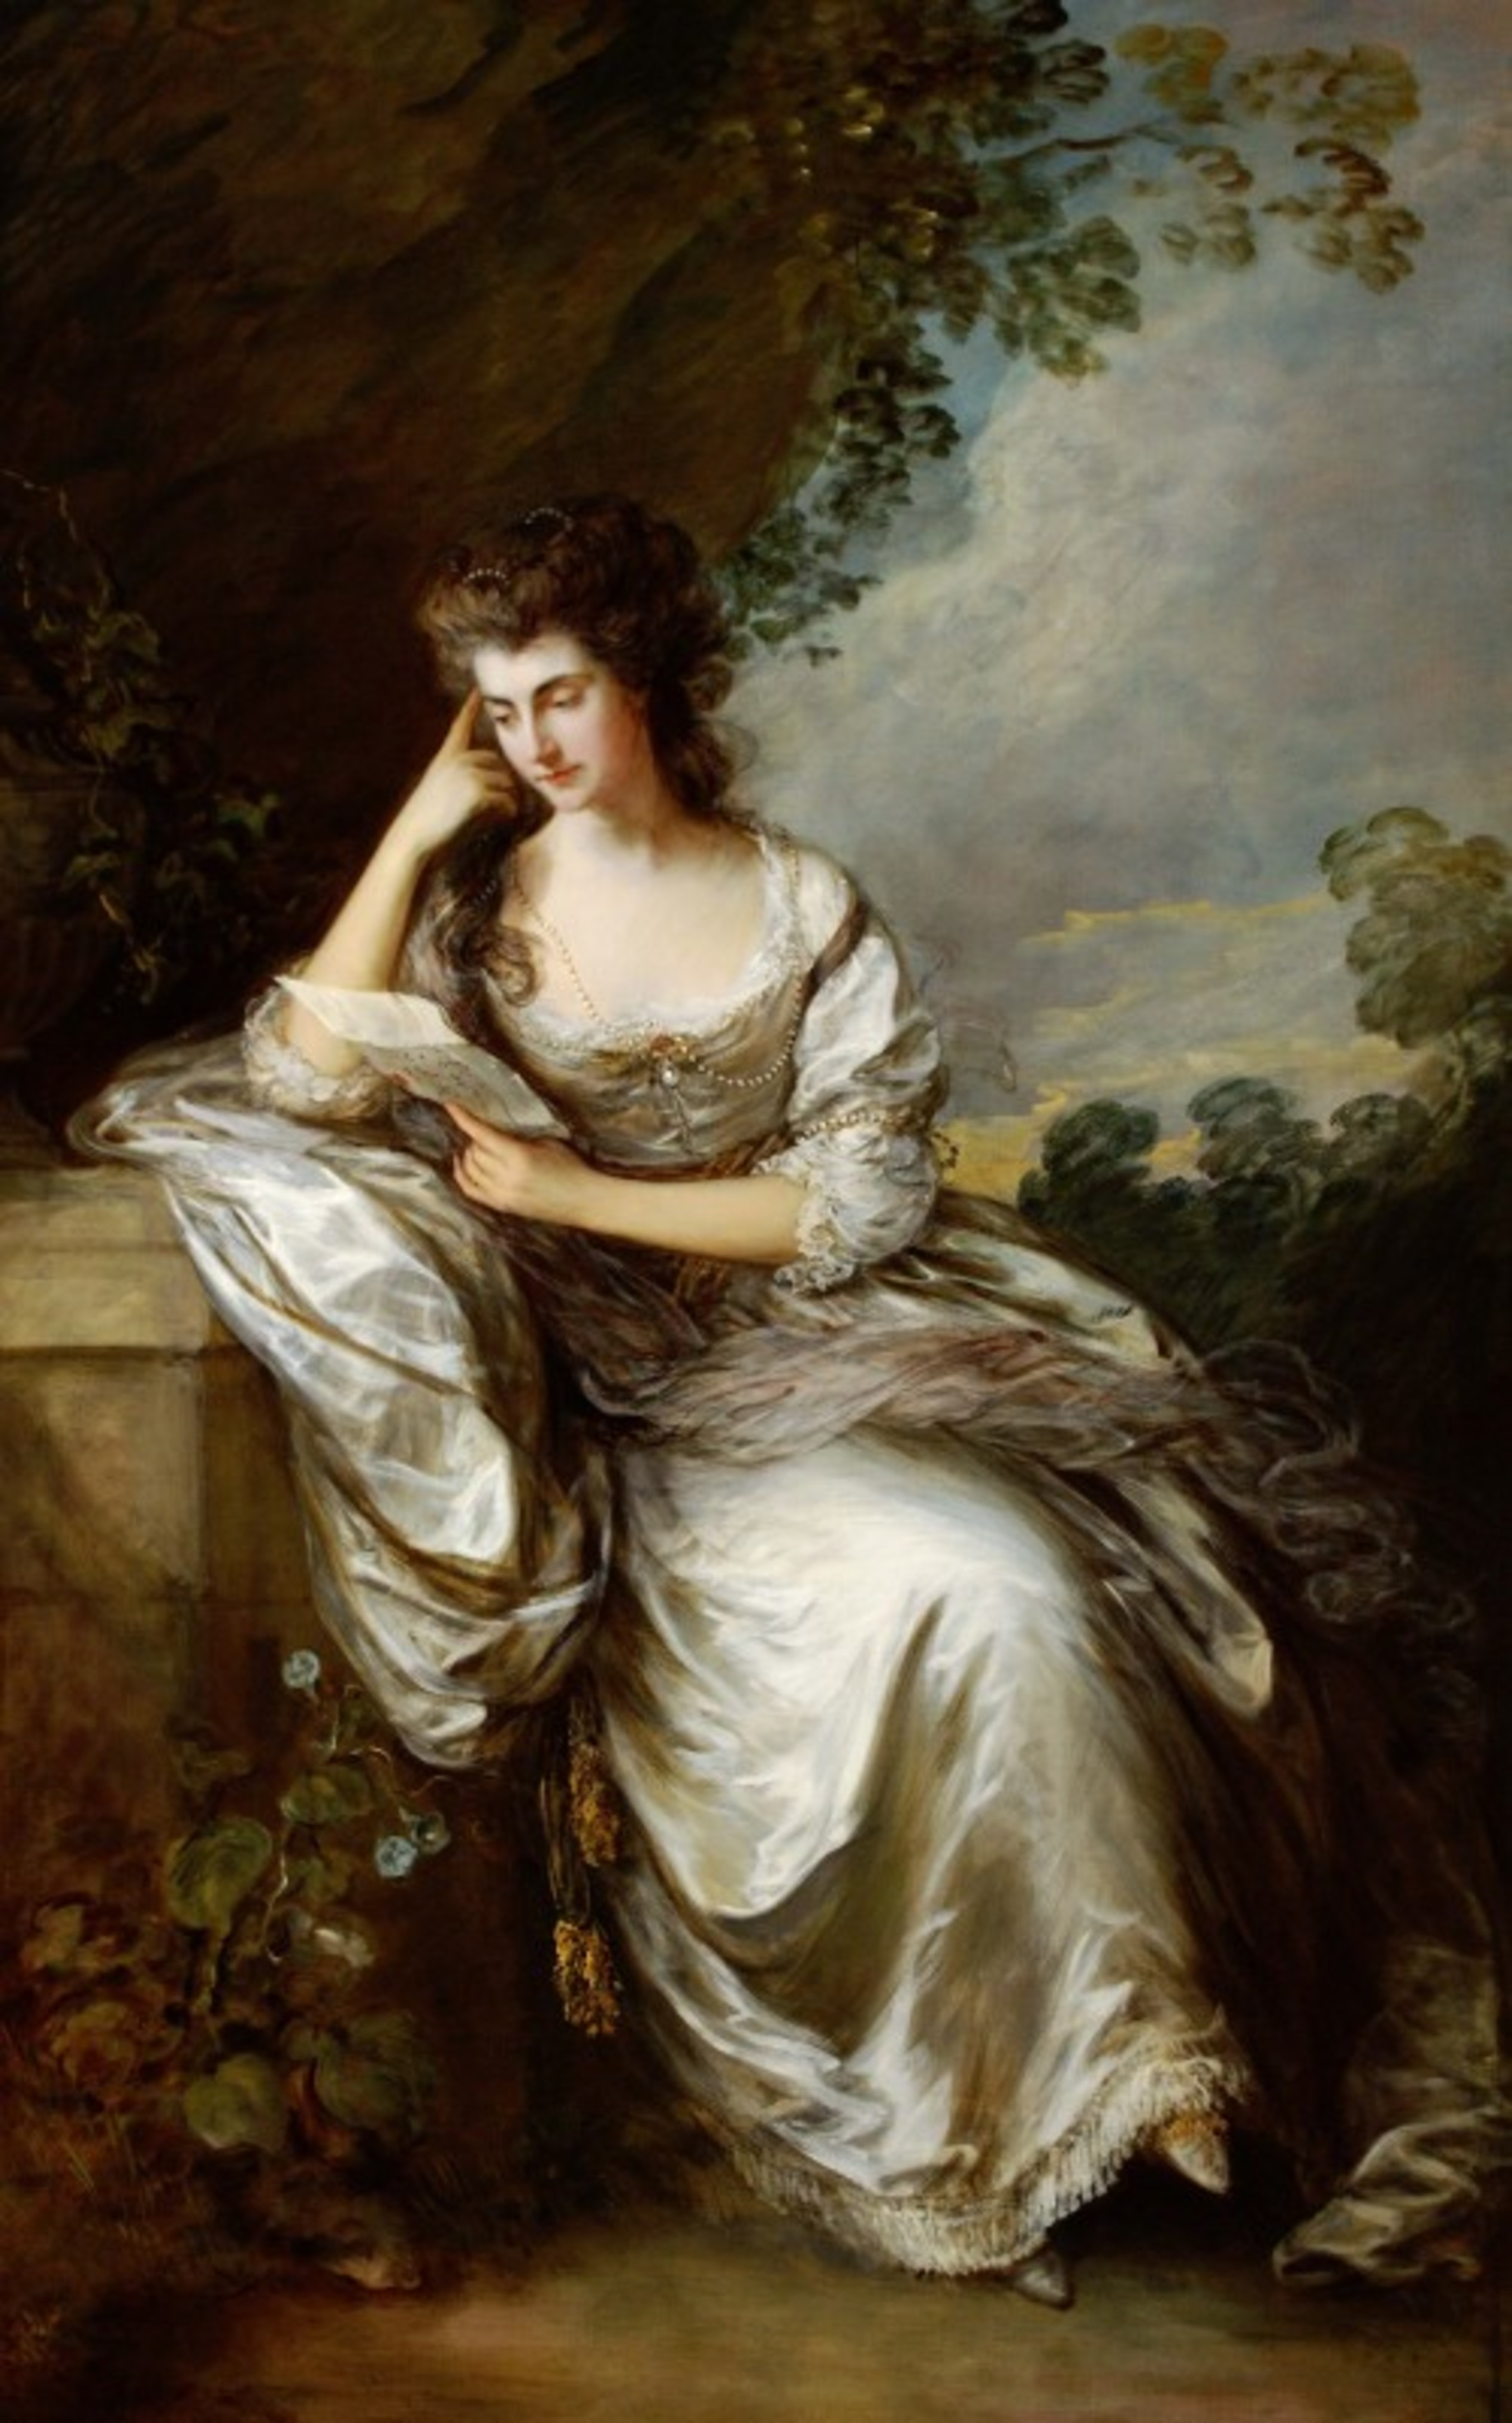 Thomas_Gainsborough_Frances_Browne_Mrs_John_Douglas_1746_-_1811_1783-84_at_Waddesdon_Manor-1.jpg